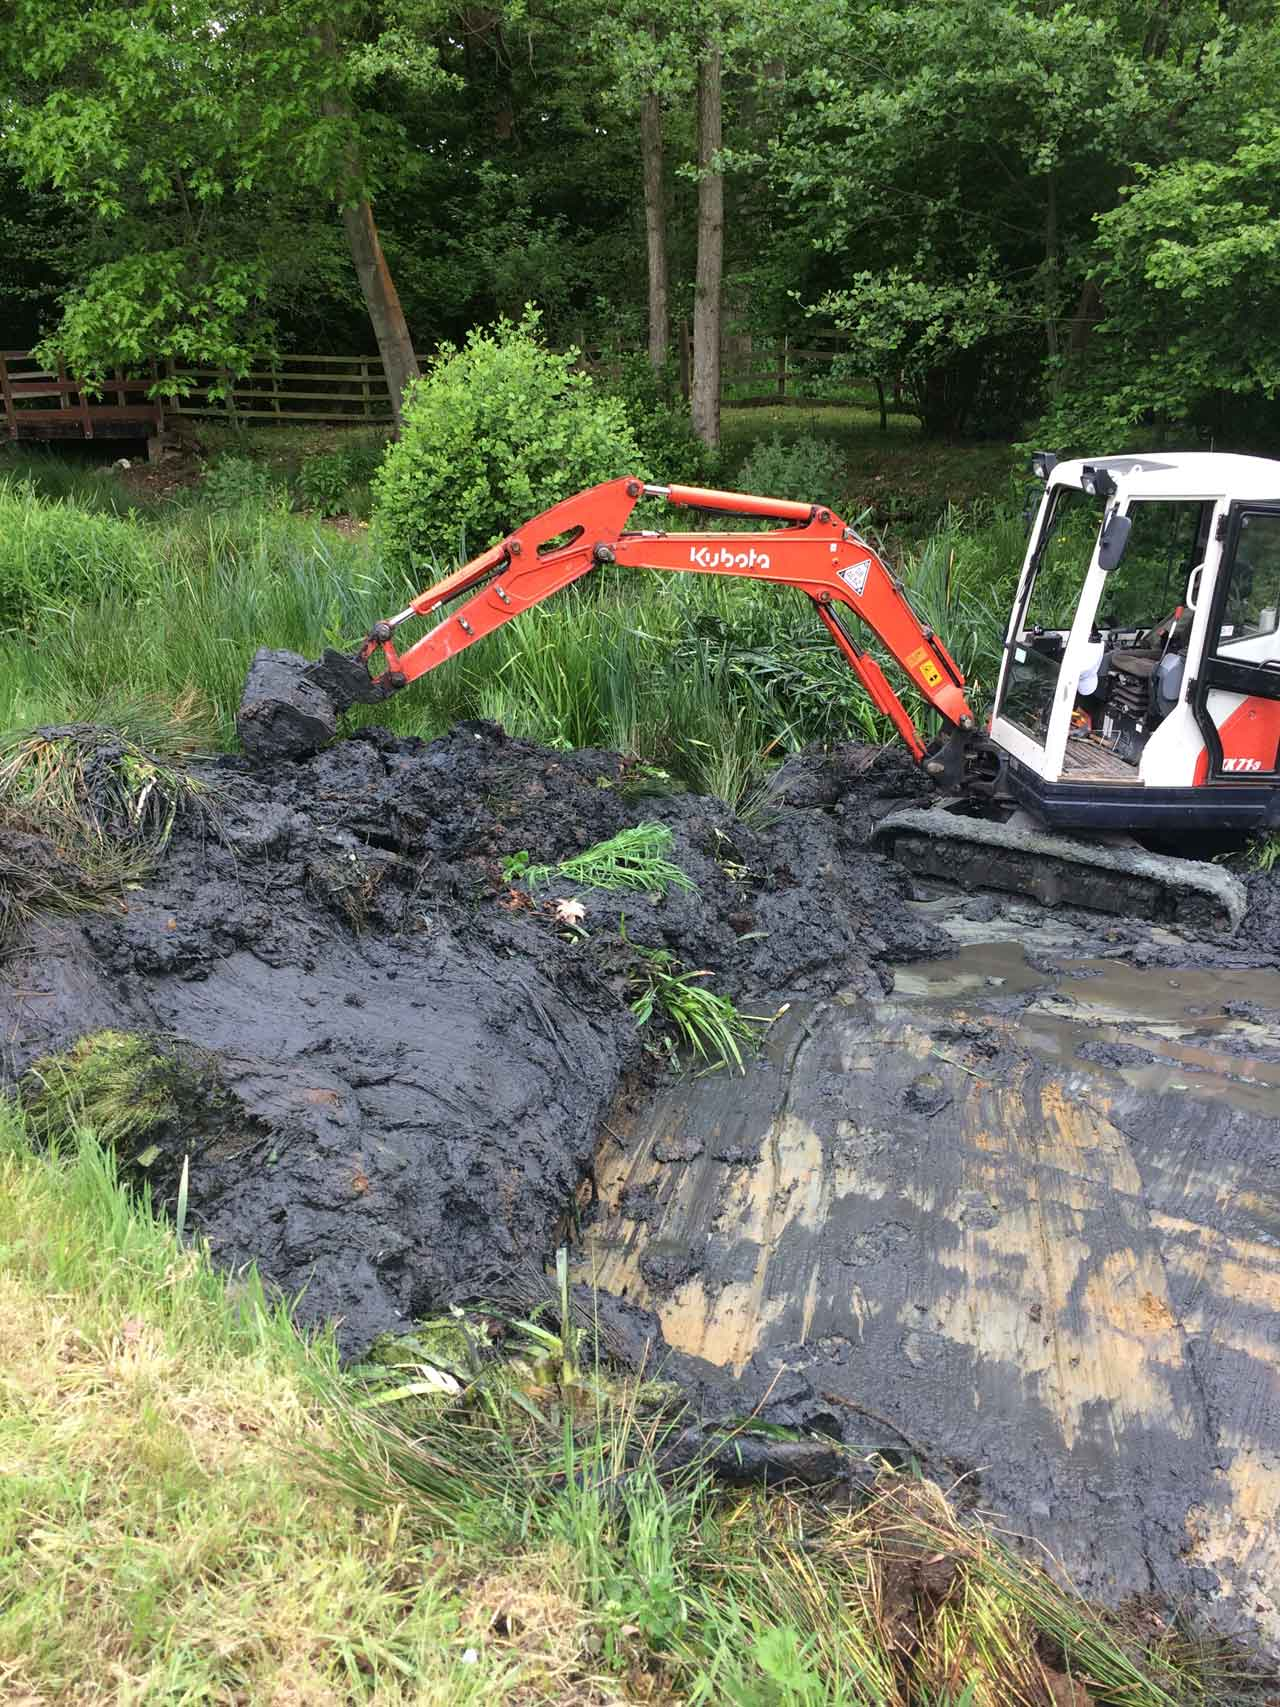 Image of a Kubota excavator clearing a lake ready for traditional clay lake relining at Barkham in Berkshire - Let the digger do it!